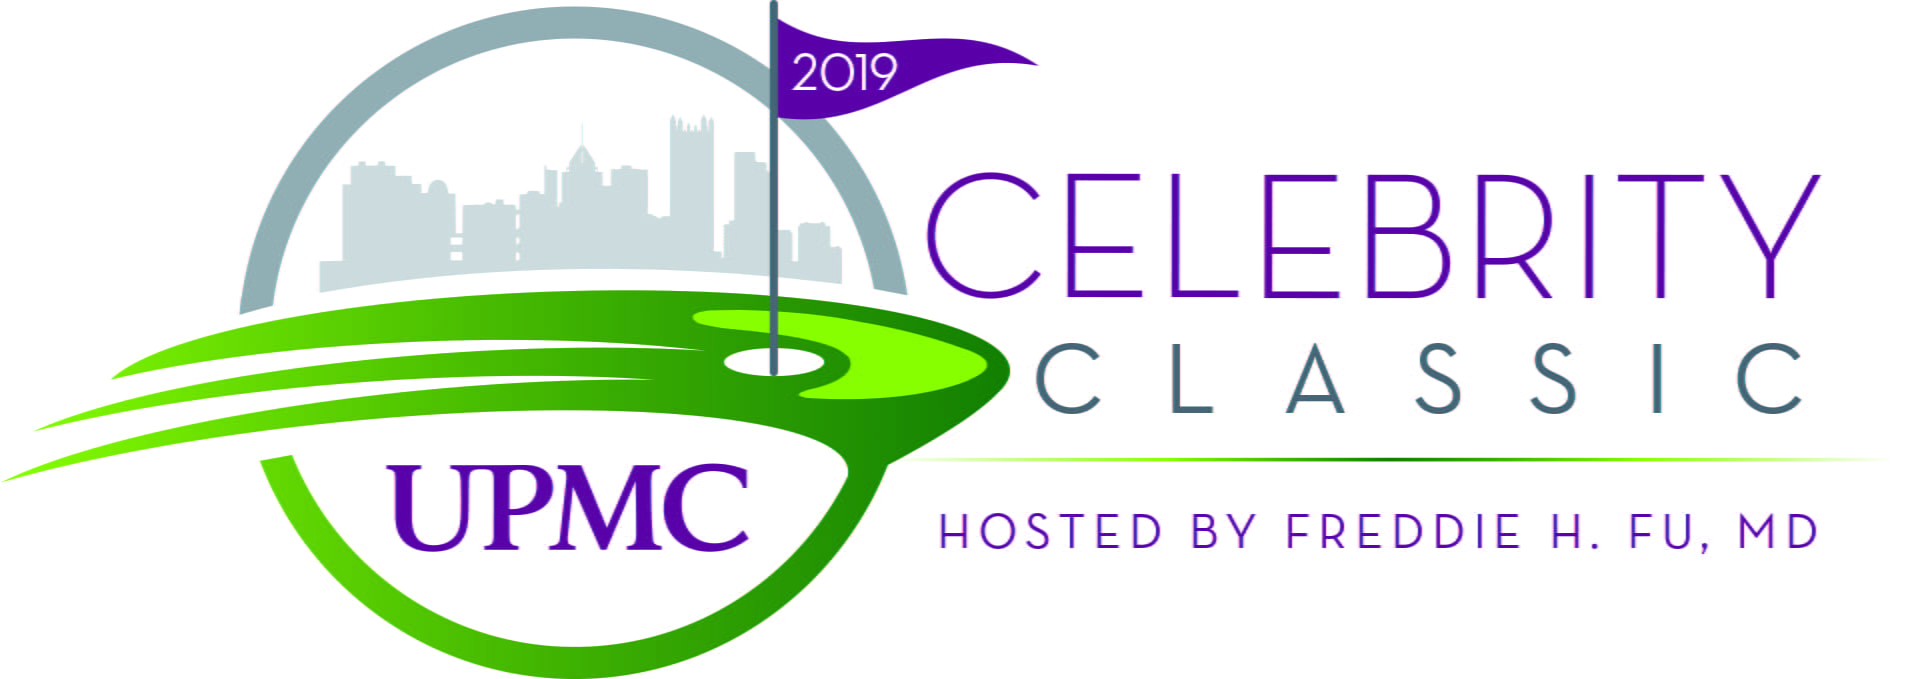 UPMC Celebrity Classic Banner